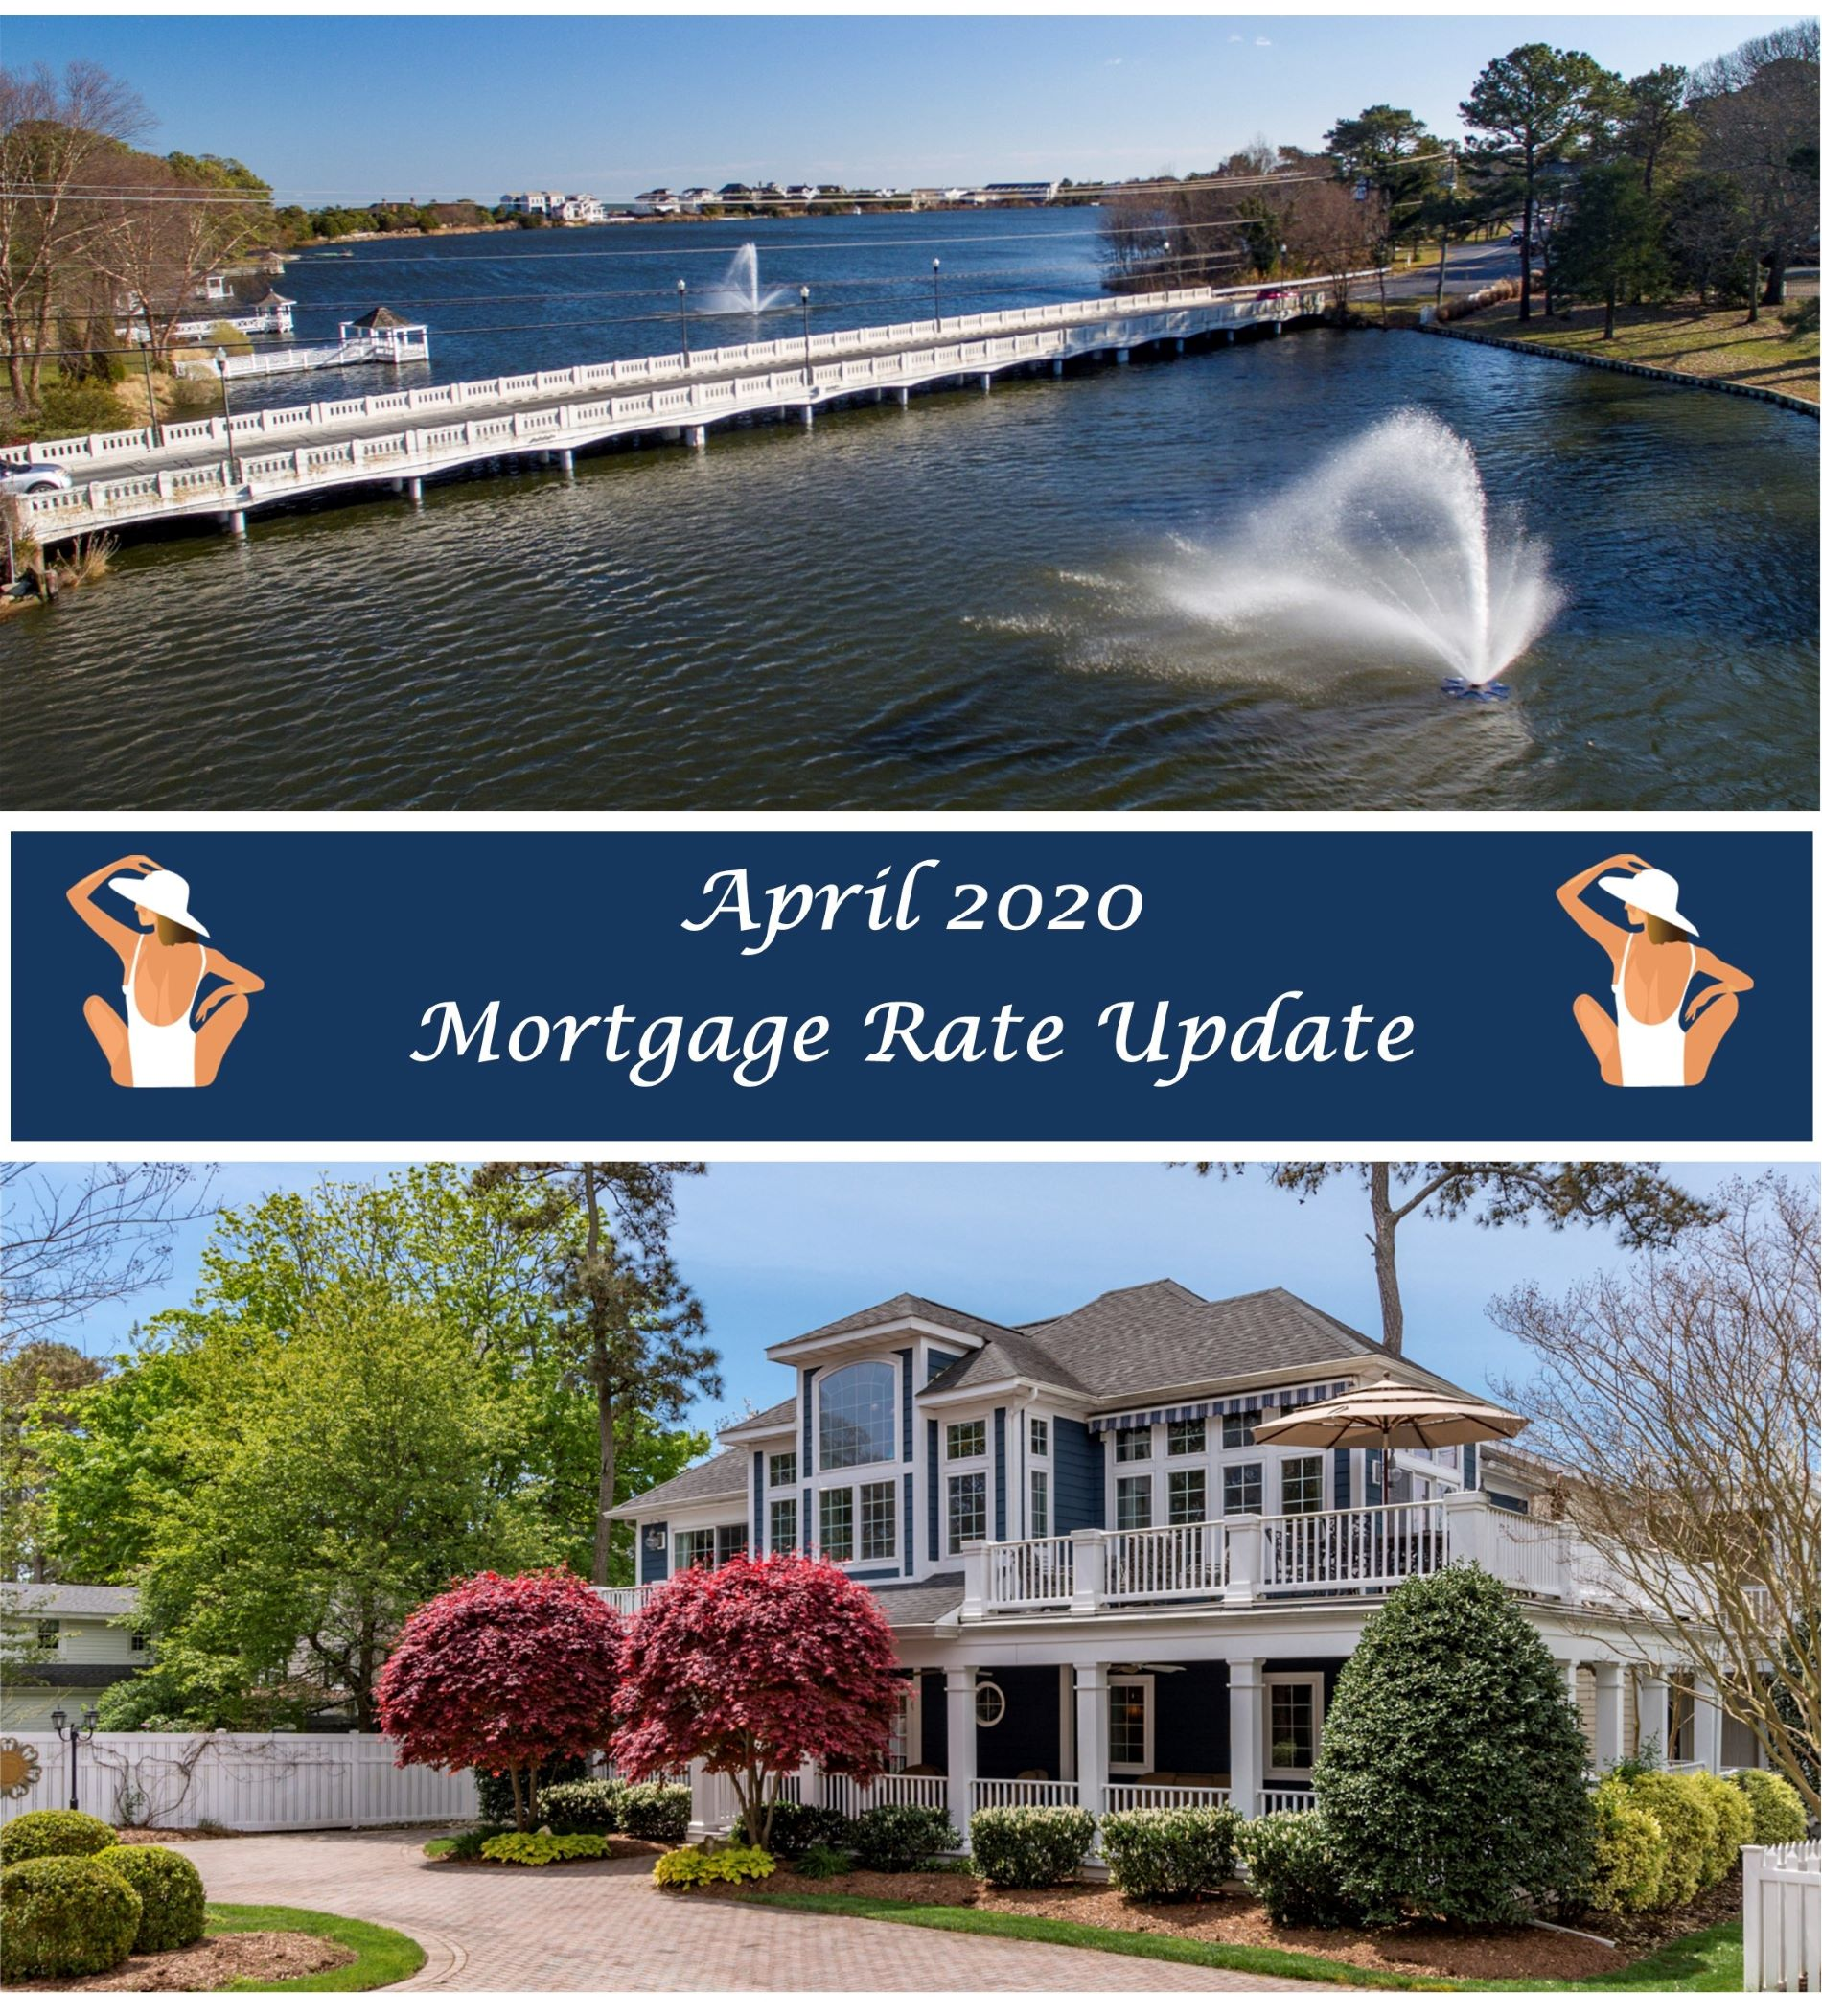 April 2020 Mortgage Update